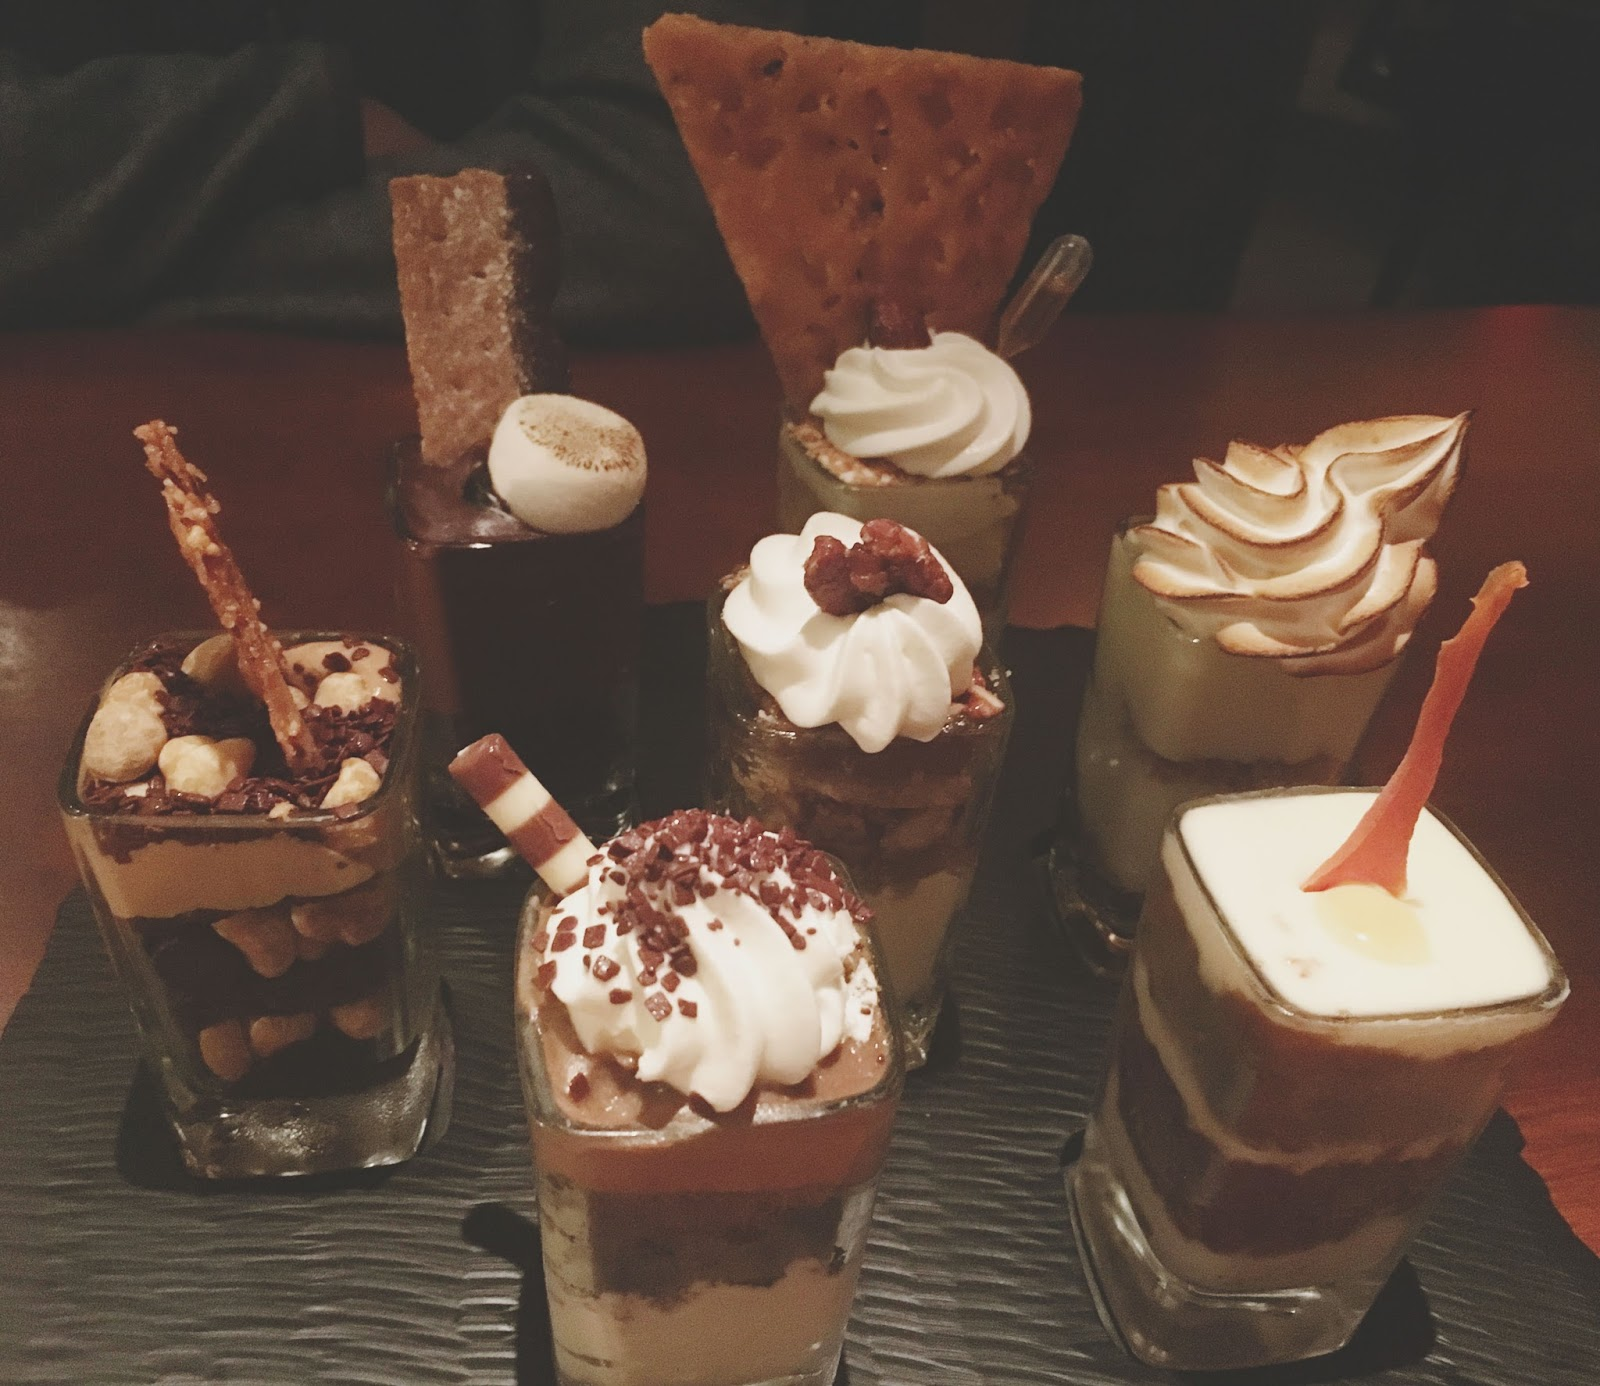 desserts at Seasons 52, a restaurant in Houston, Texas